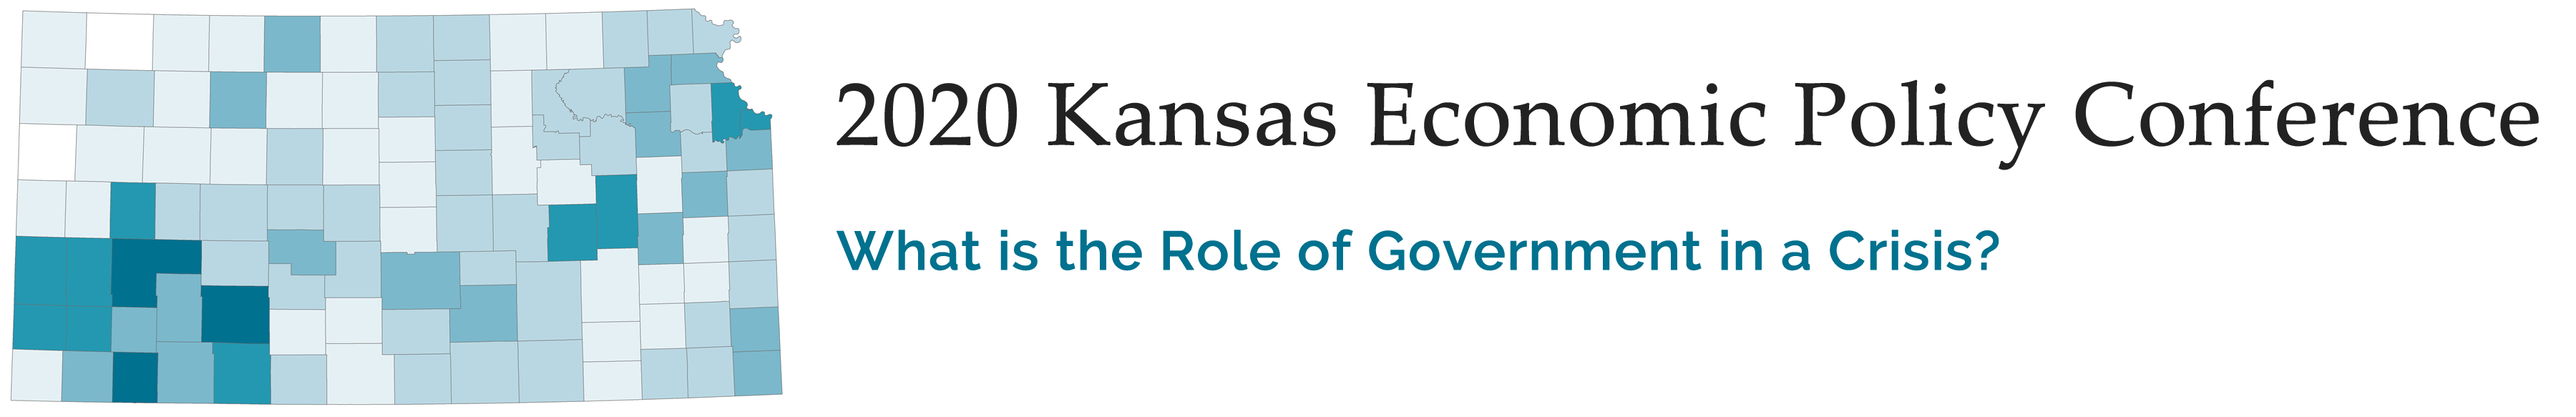 2020 Kansas Economic Policy Conference